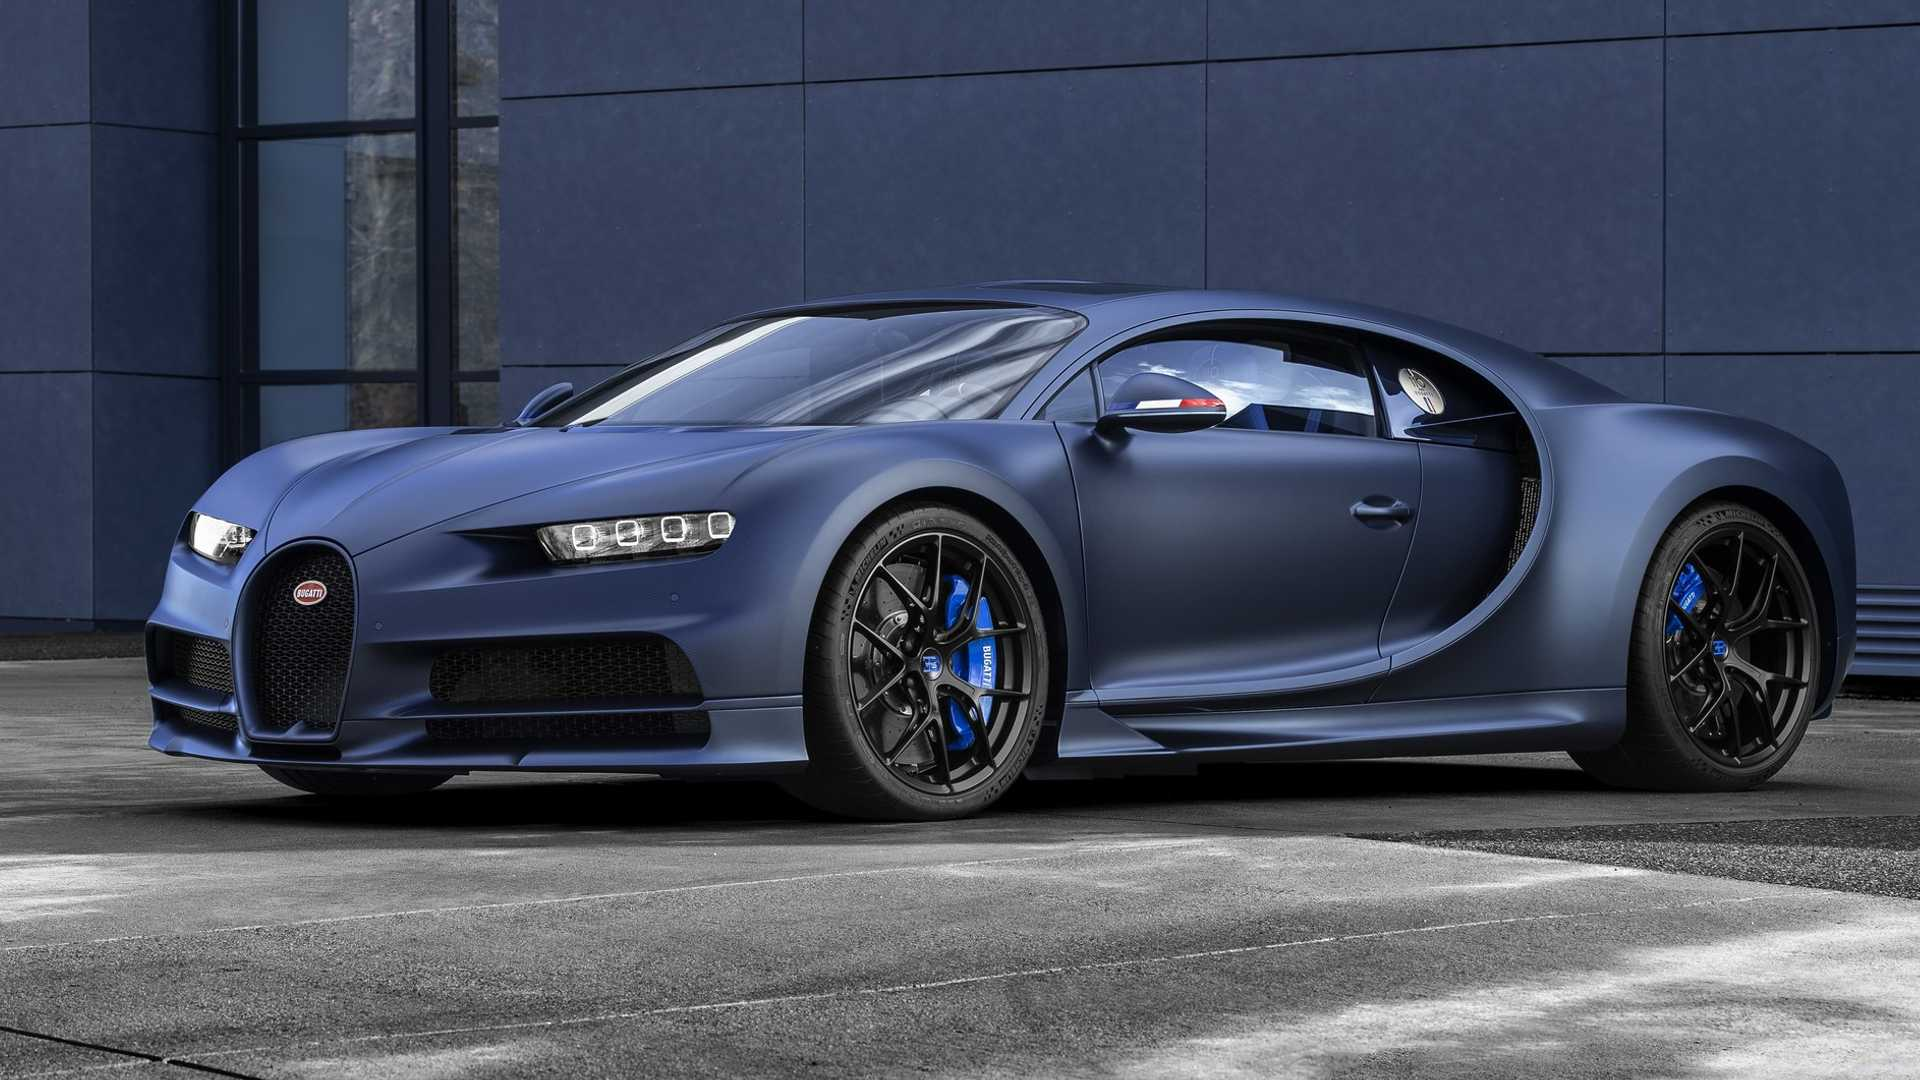 To celebrate its 110th birthday, Bugatti will soon be launching a limited series of Chiron Sport hypercars flying the colors of the French national flag